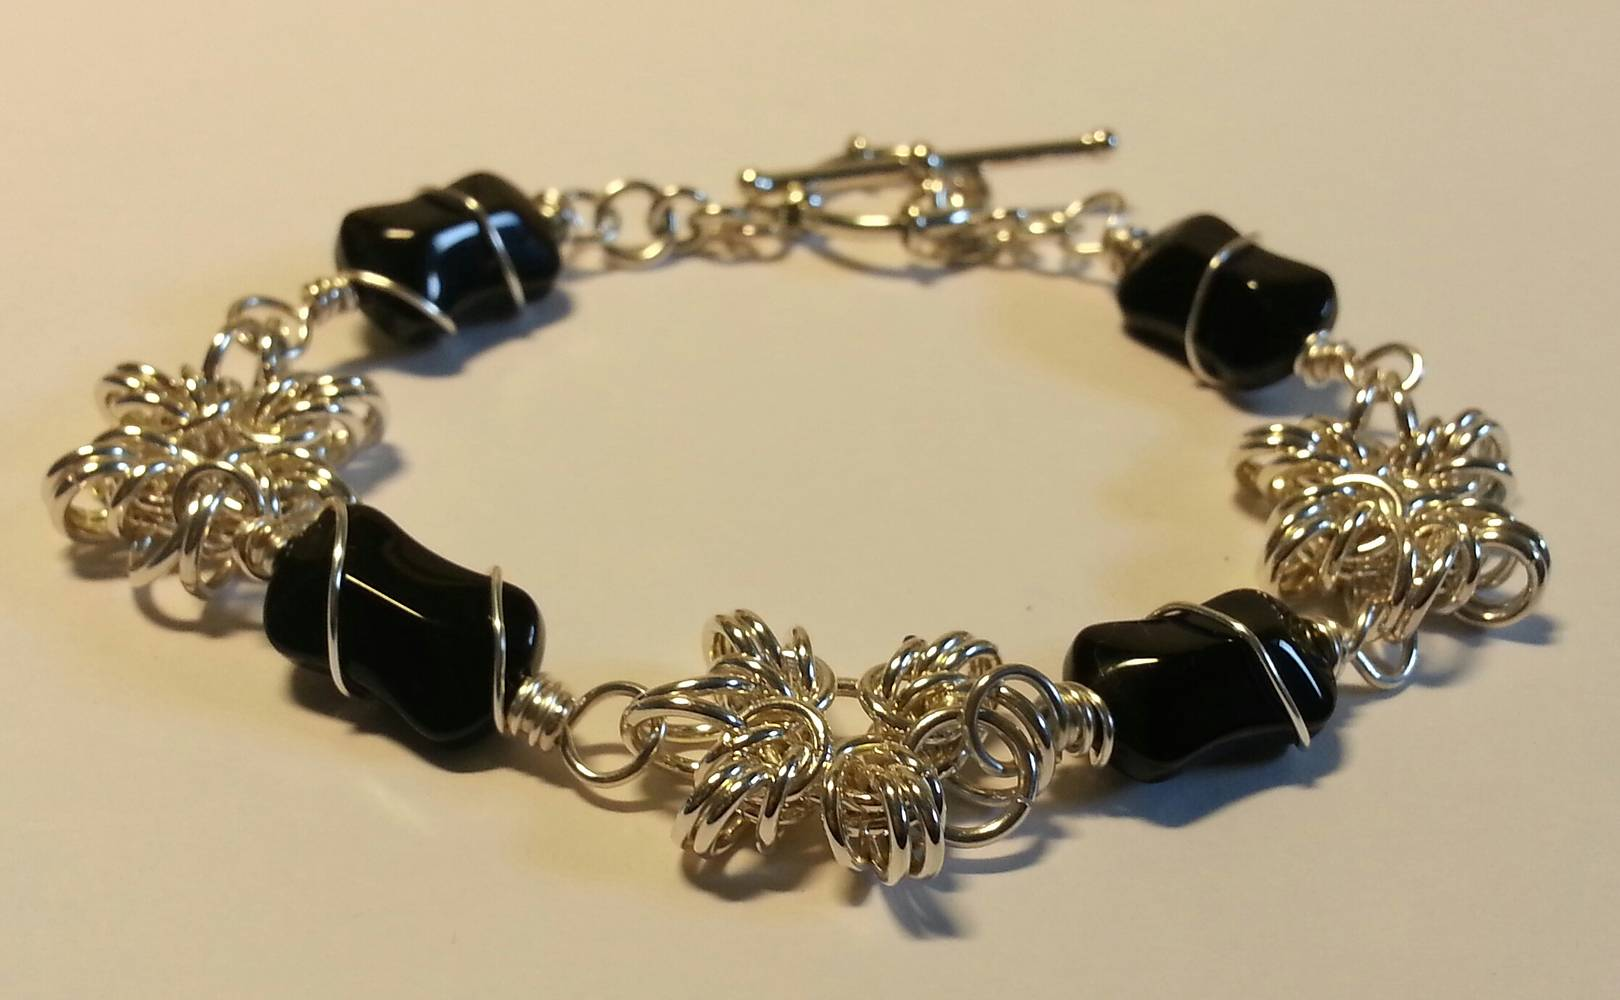 SS chainmaille and black polished glass beads bracelet by Vicki Allesia